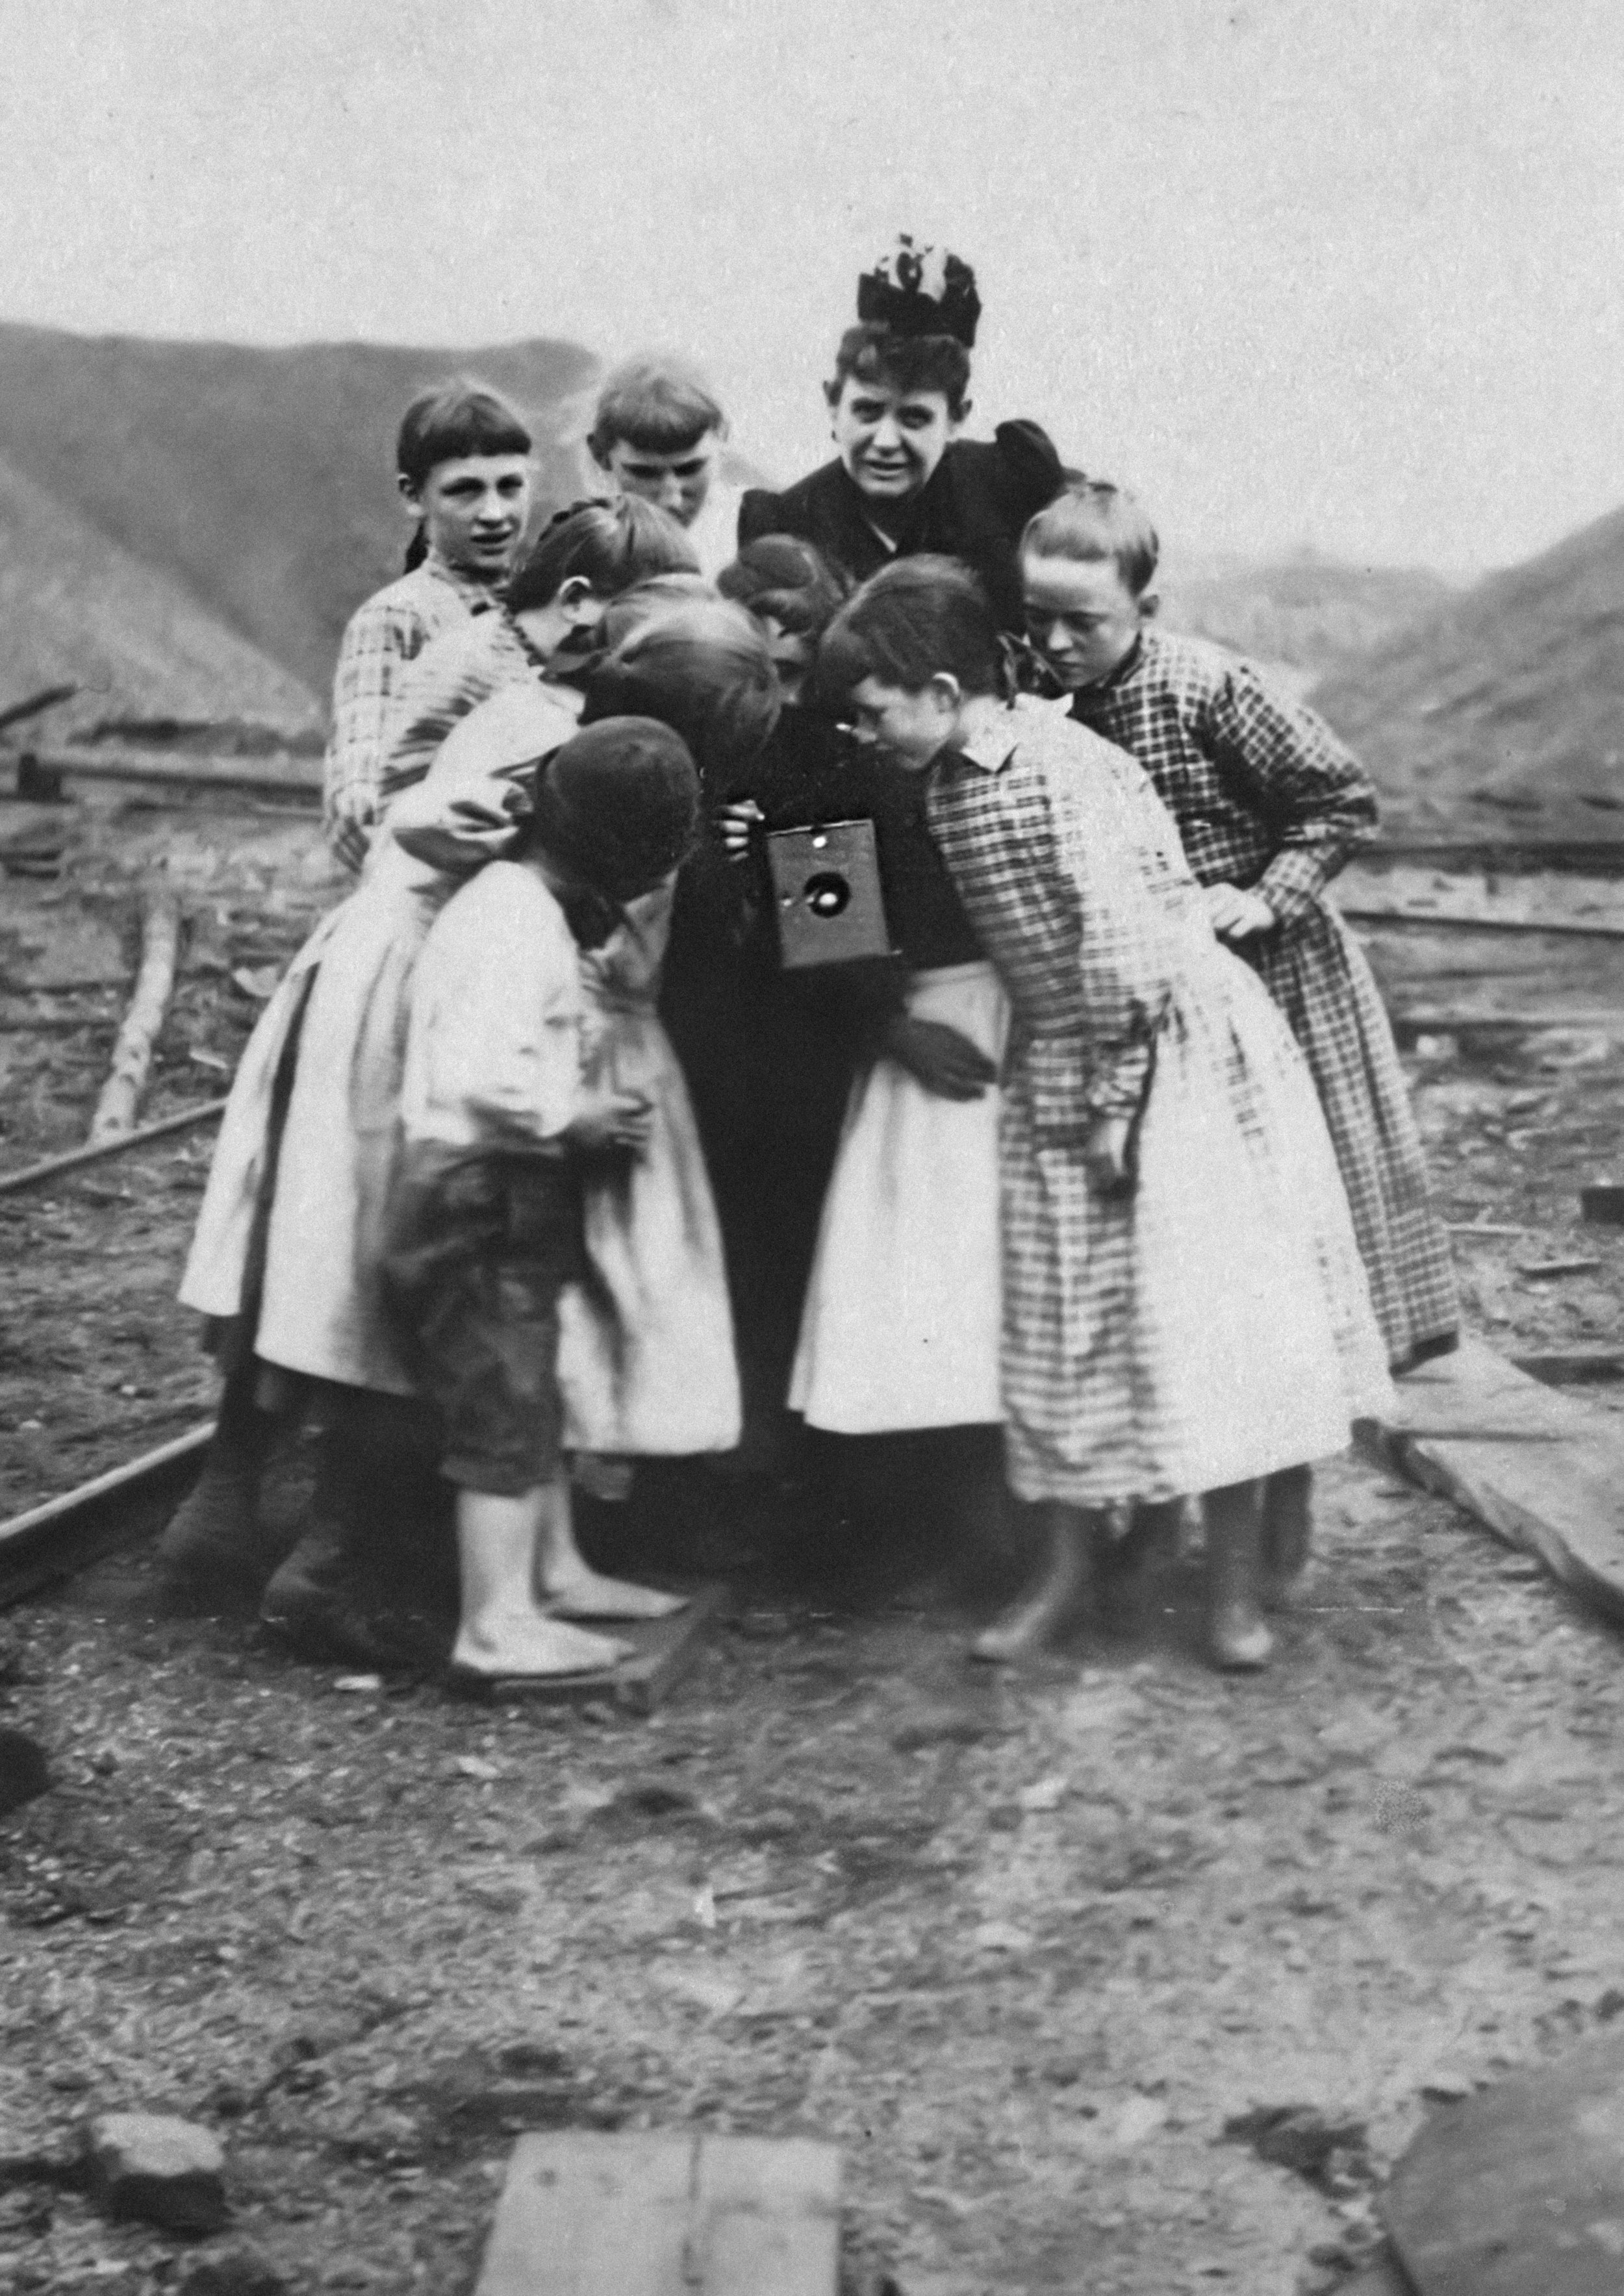 Frances Benjamin Johnston with group of children looking at her camera1.jpg